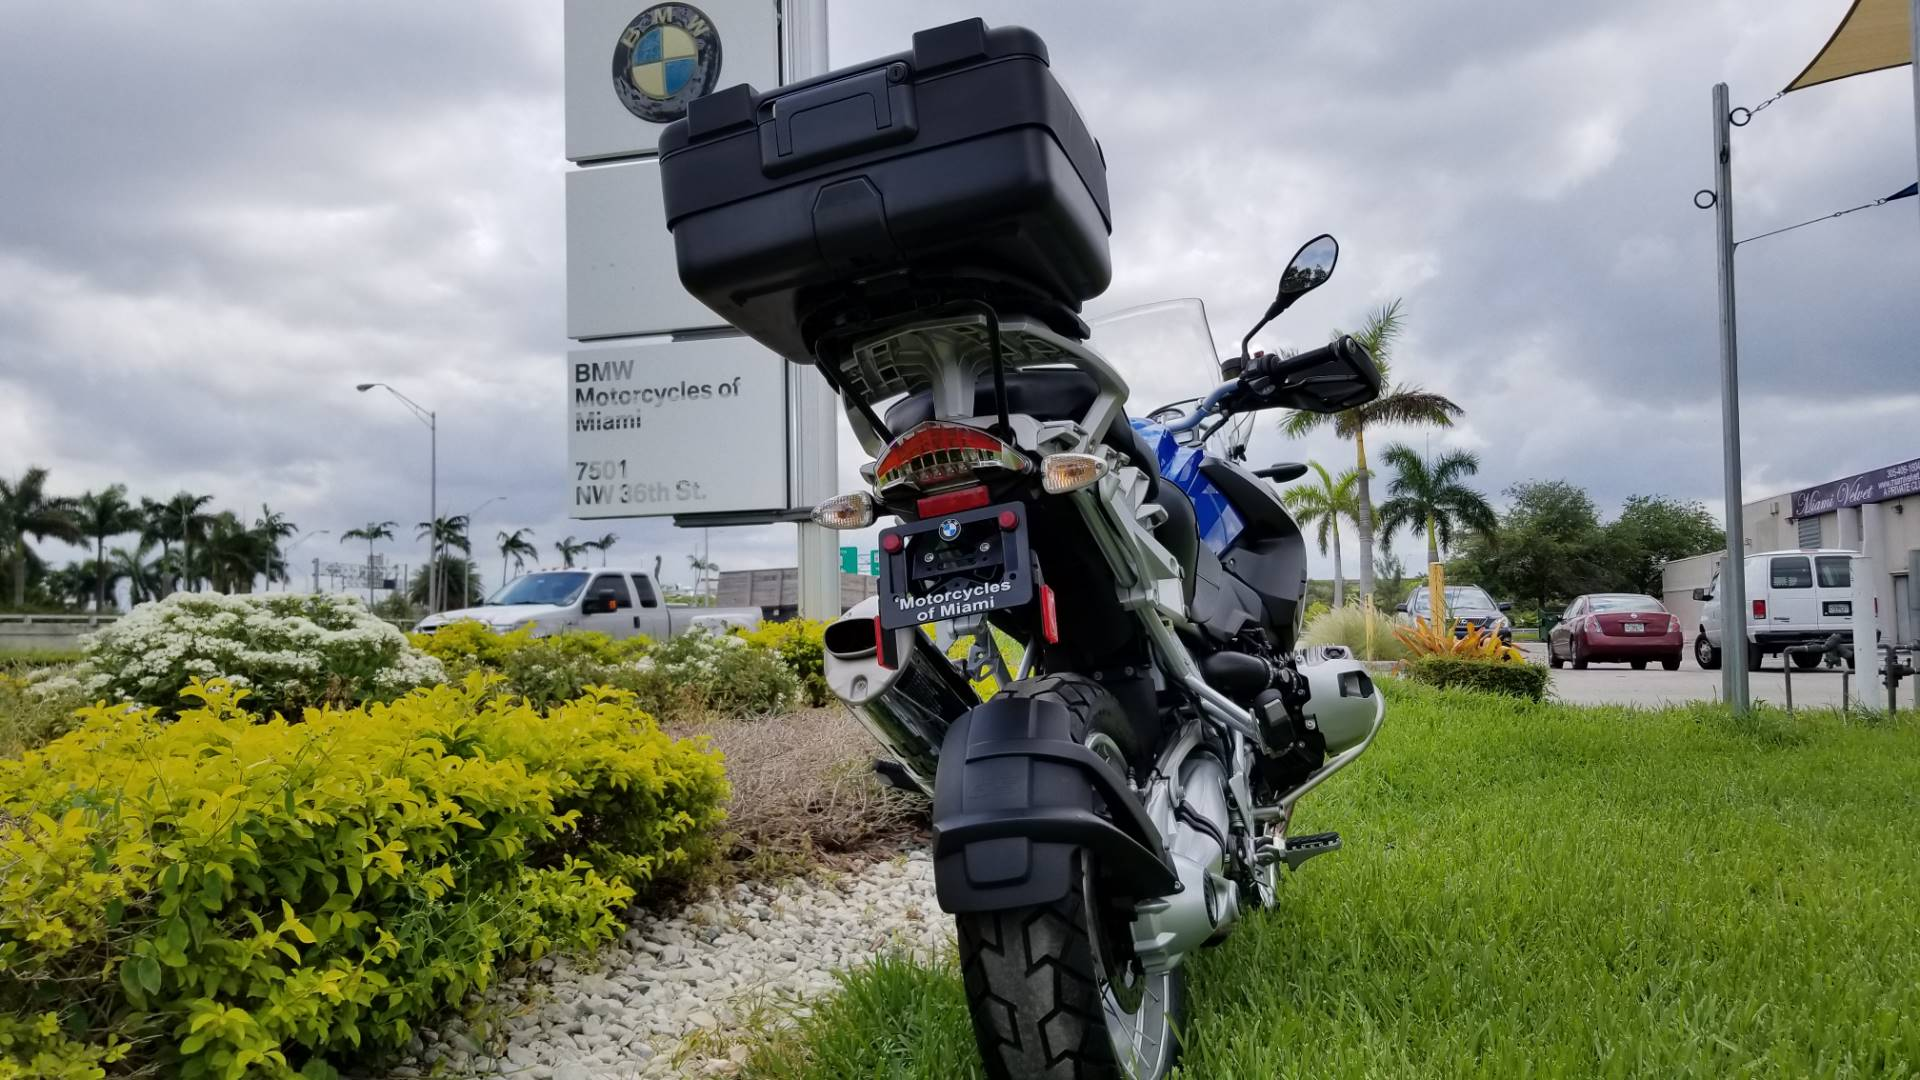 Used 2012 BMW R 1200 GS For Sale, BMW R 1200GS For Sale, BMW Motorcycle r1200GS, BMW R1200GS, BMW, GS, DUAL. - Photo 24